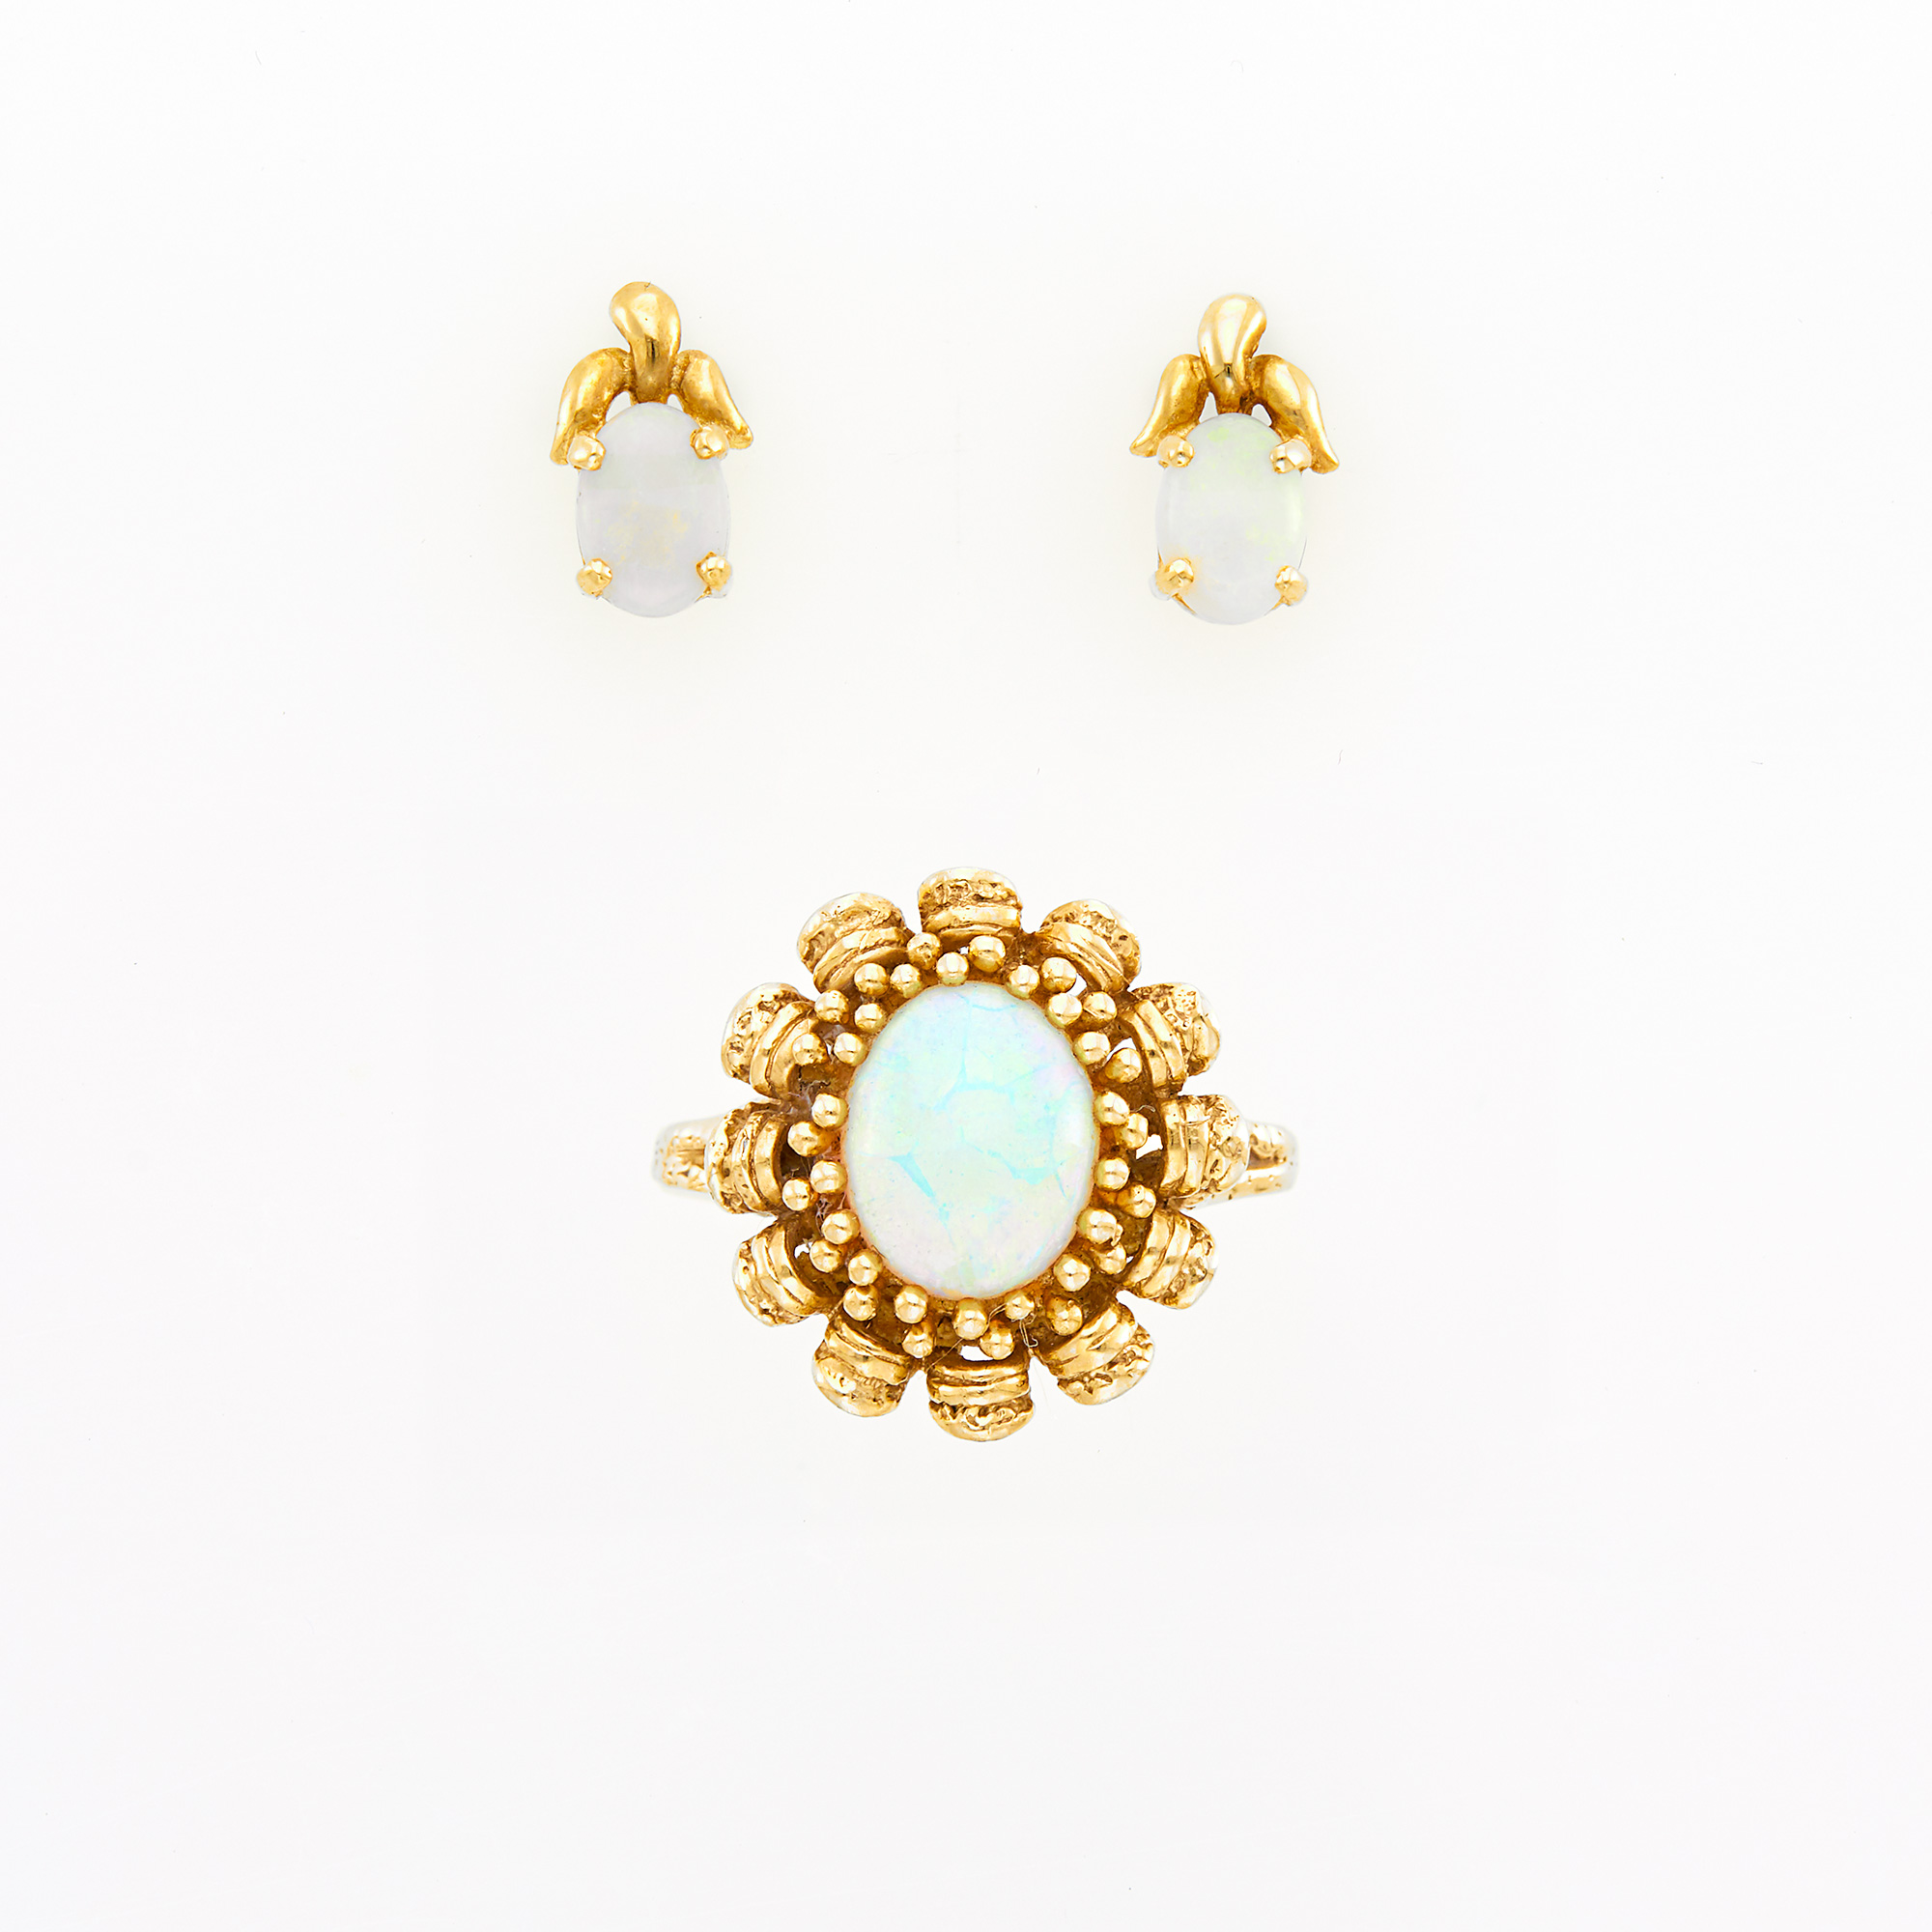 Lot image - Pair of Gold and Opal Stud Earrings and Ring